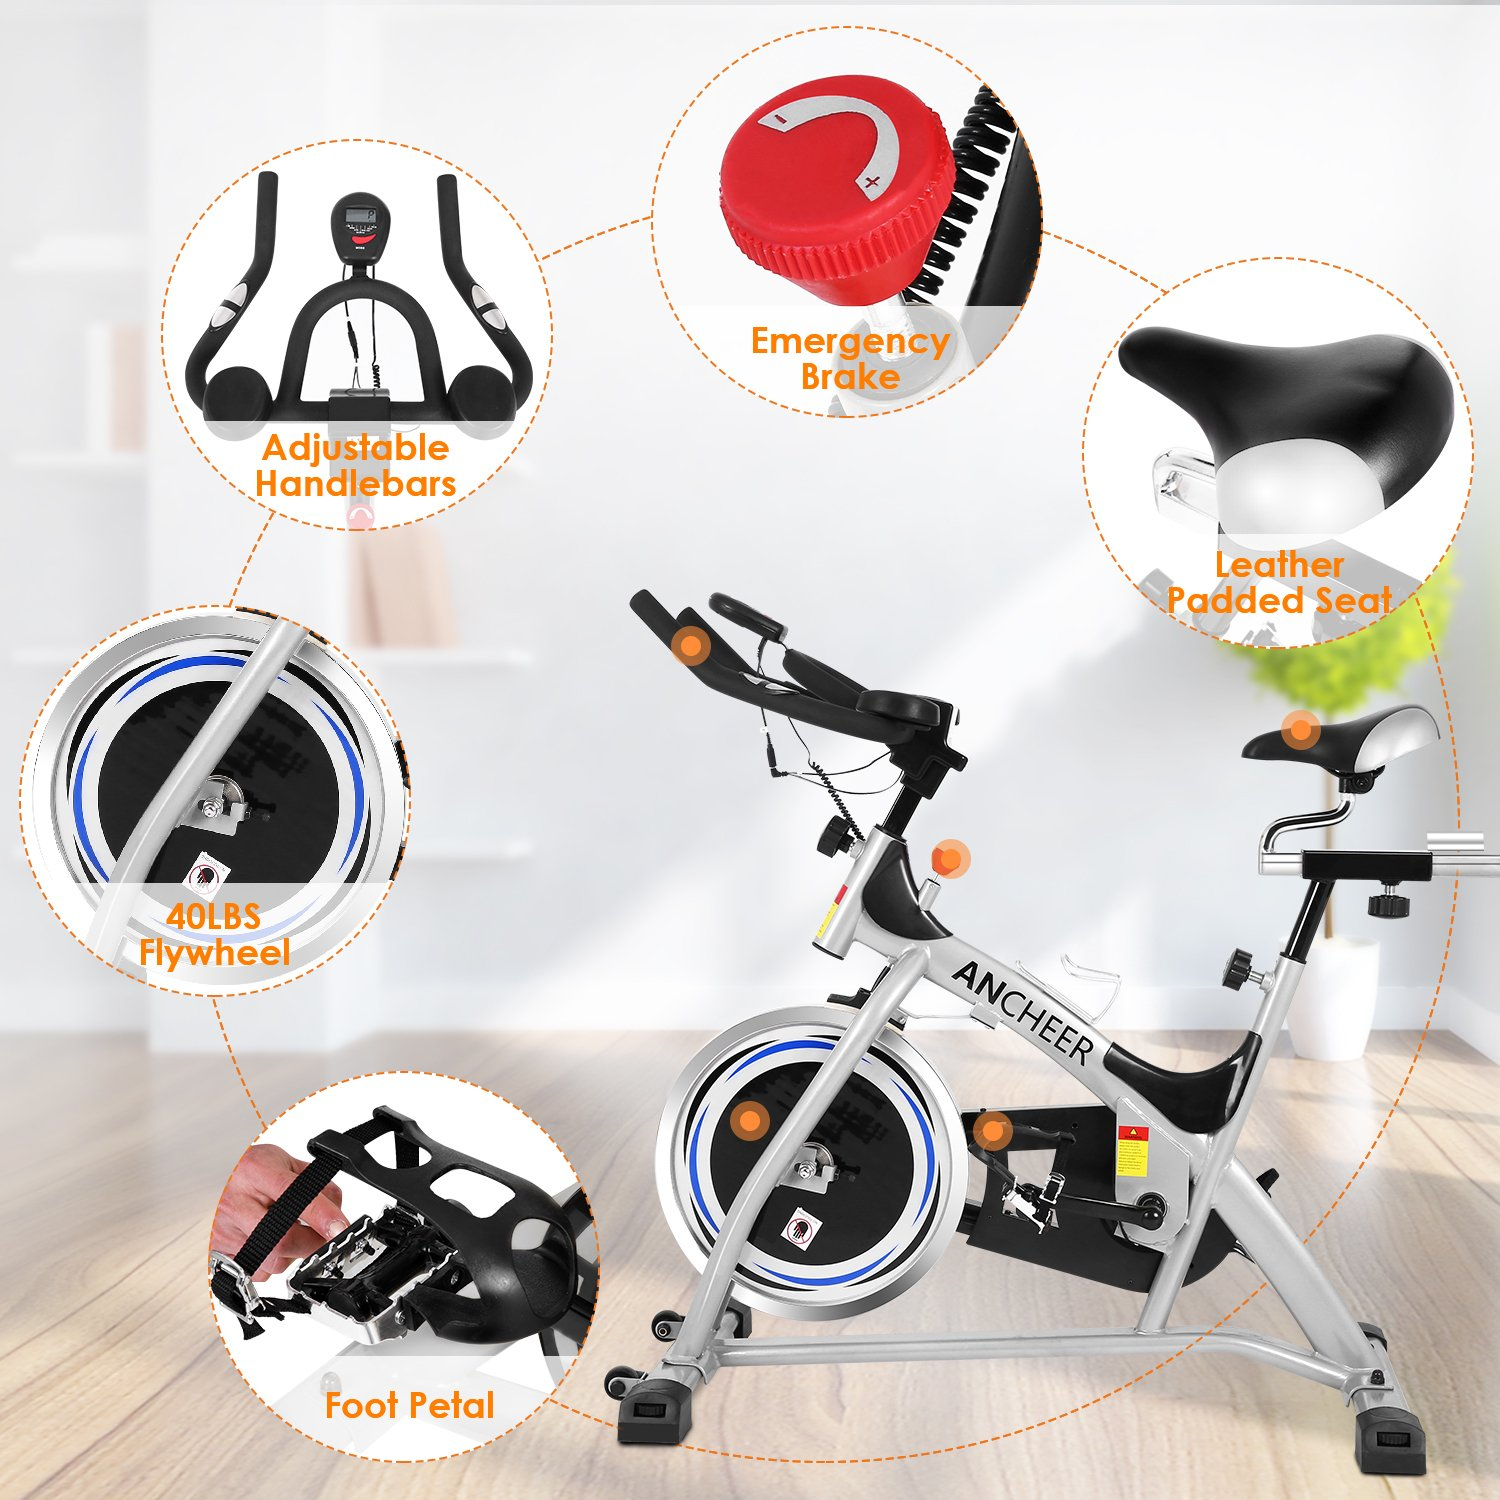 ANCHEER Stationary Bike, 40 LBS Flywheel Belt Drive Indoor Cycling Exercise Bike with Pulse, Elbow Tray (Model: ANCHEER-A5001) (Sliver) by ANCHEER (Image #6)